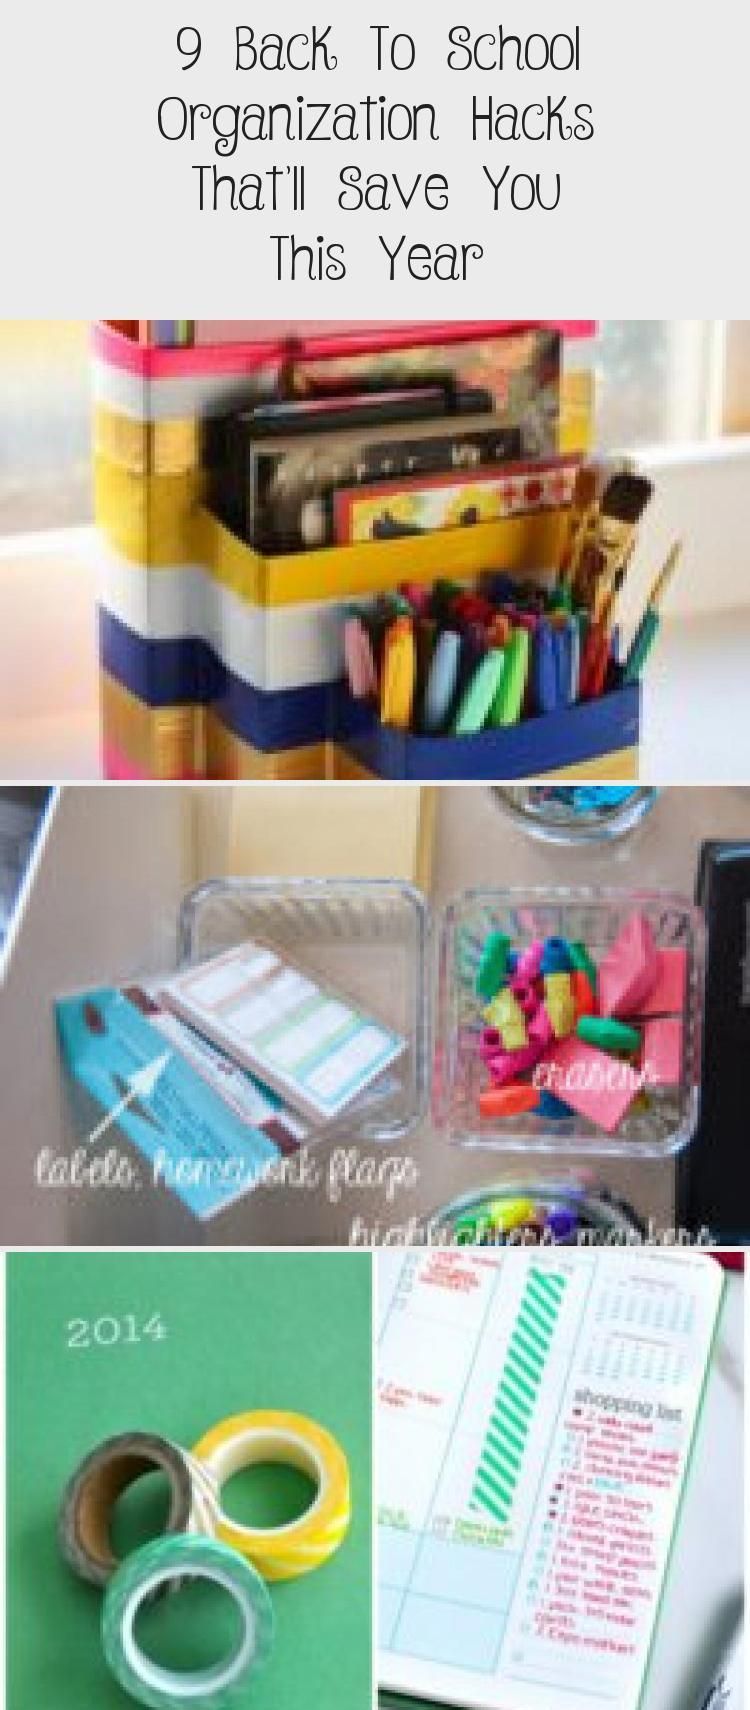 9 Back To School Organization Hacks That8217ll Save You This Year These 9 College Organization Hacks Will Help You Prepare And Get Through The Year Successfully